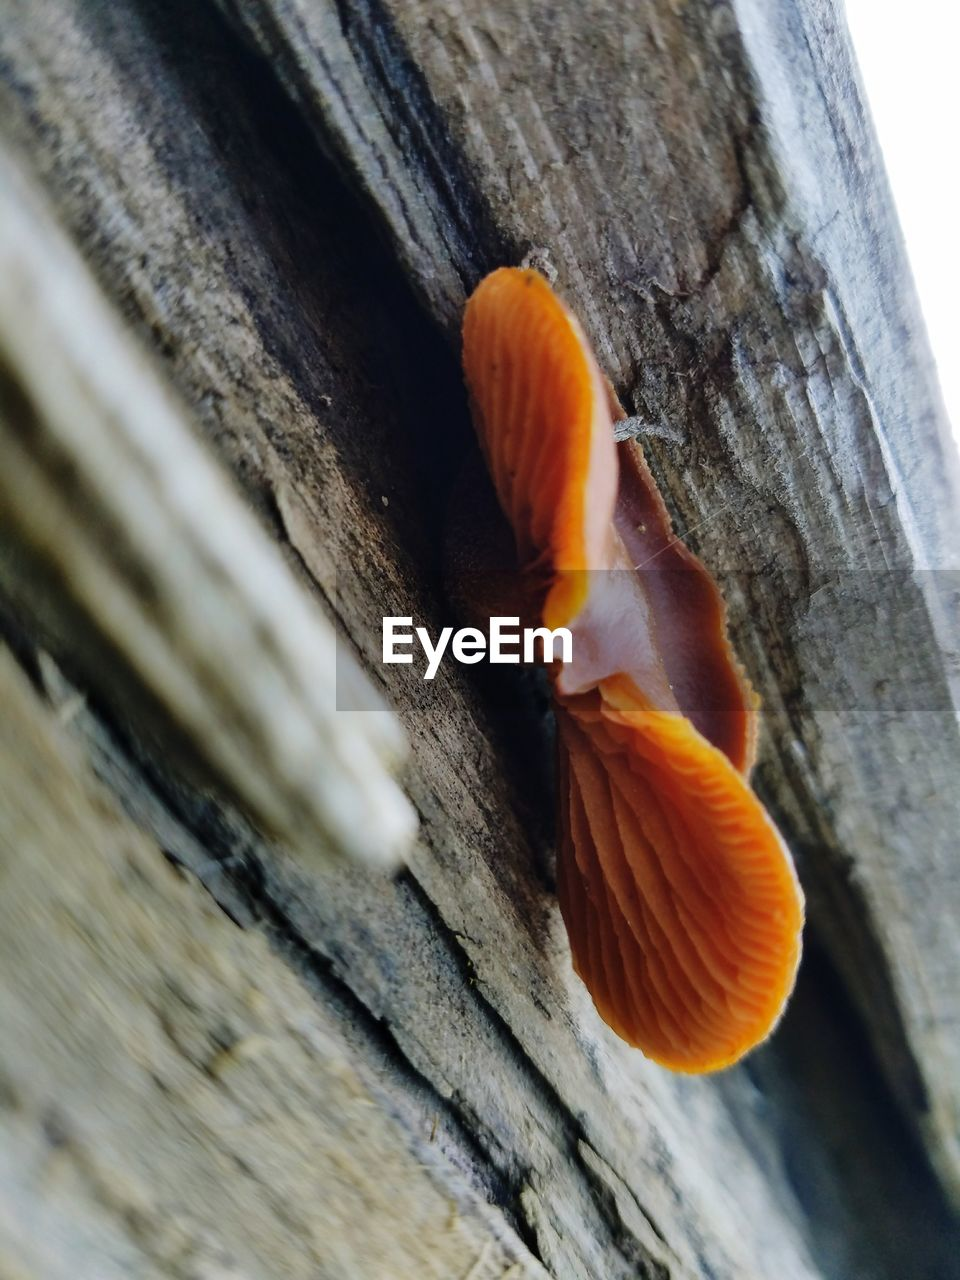 orange color, no people, close-up, animals in the wild, day, wood - material, one animal, outdoors, nature, animal themes, beauty in nature, fragility, freshness